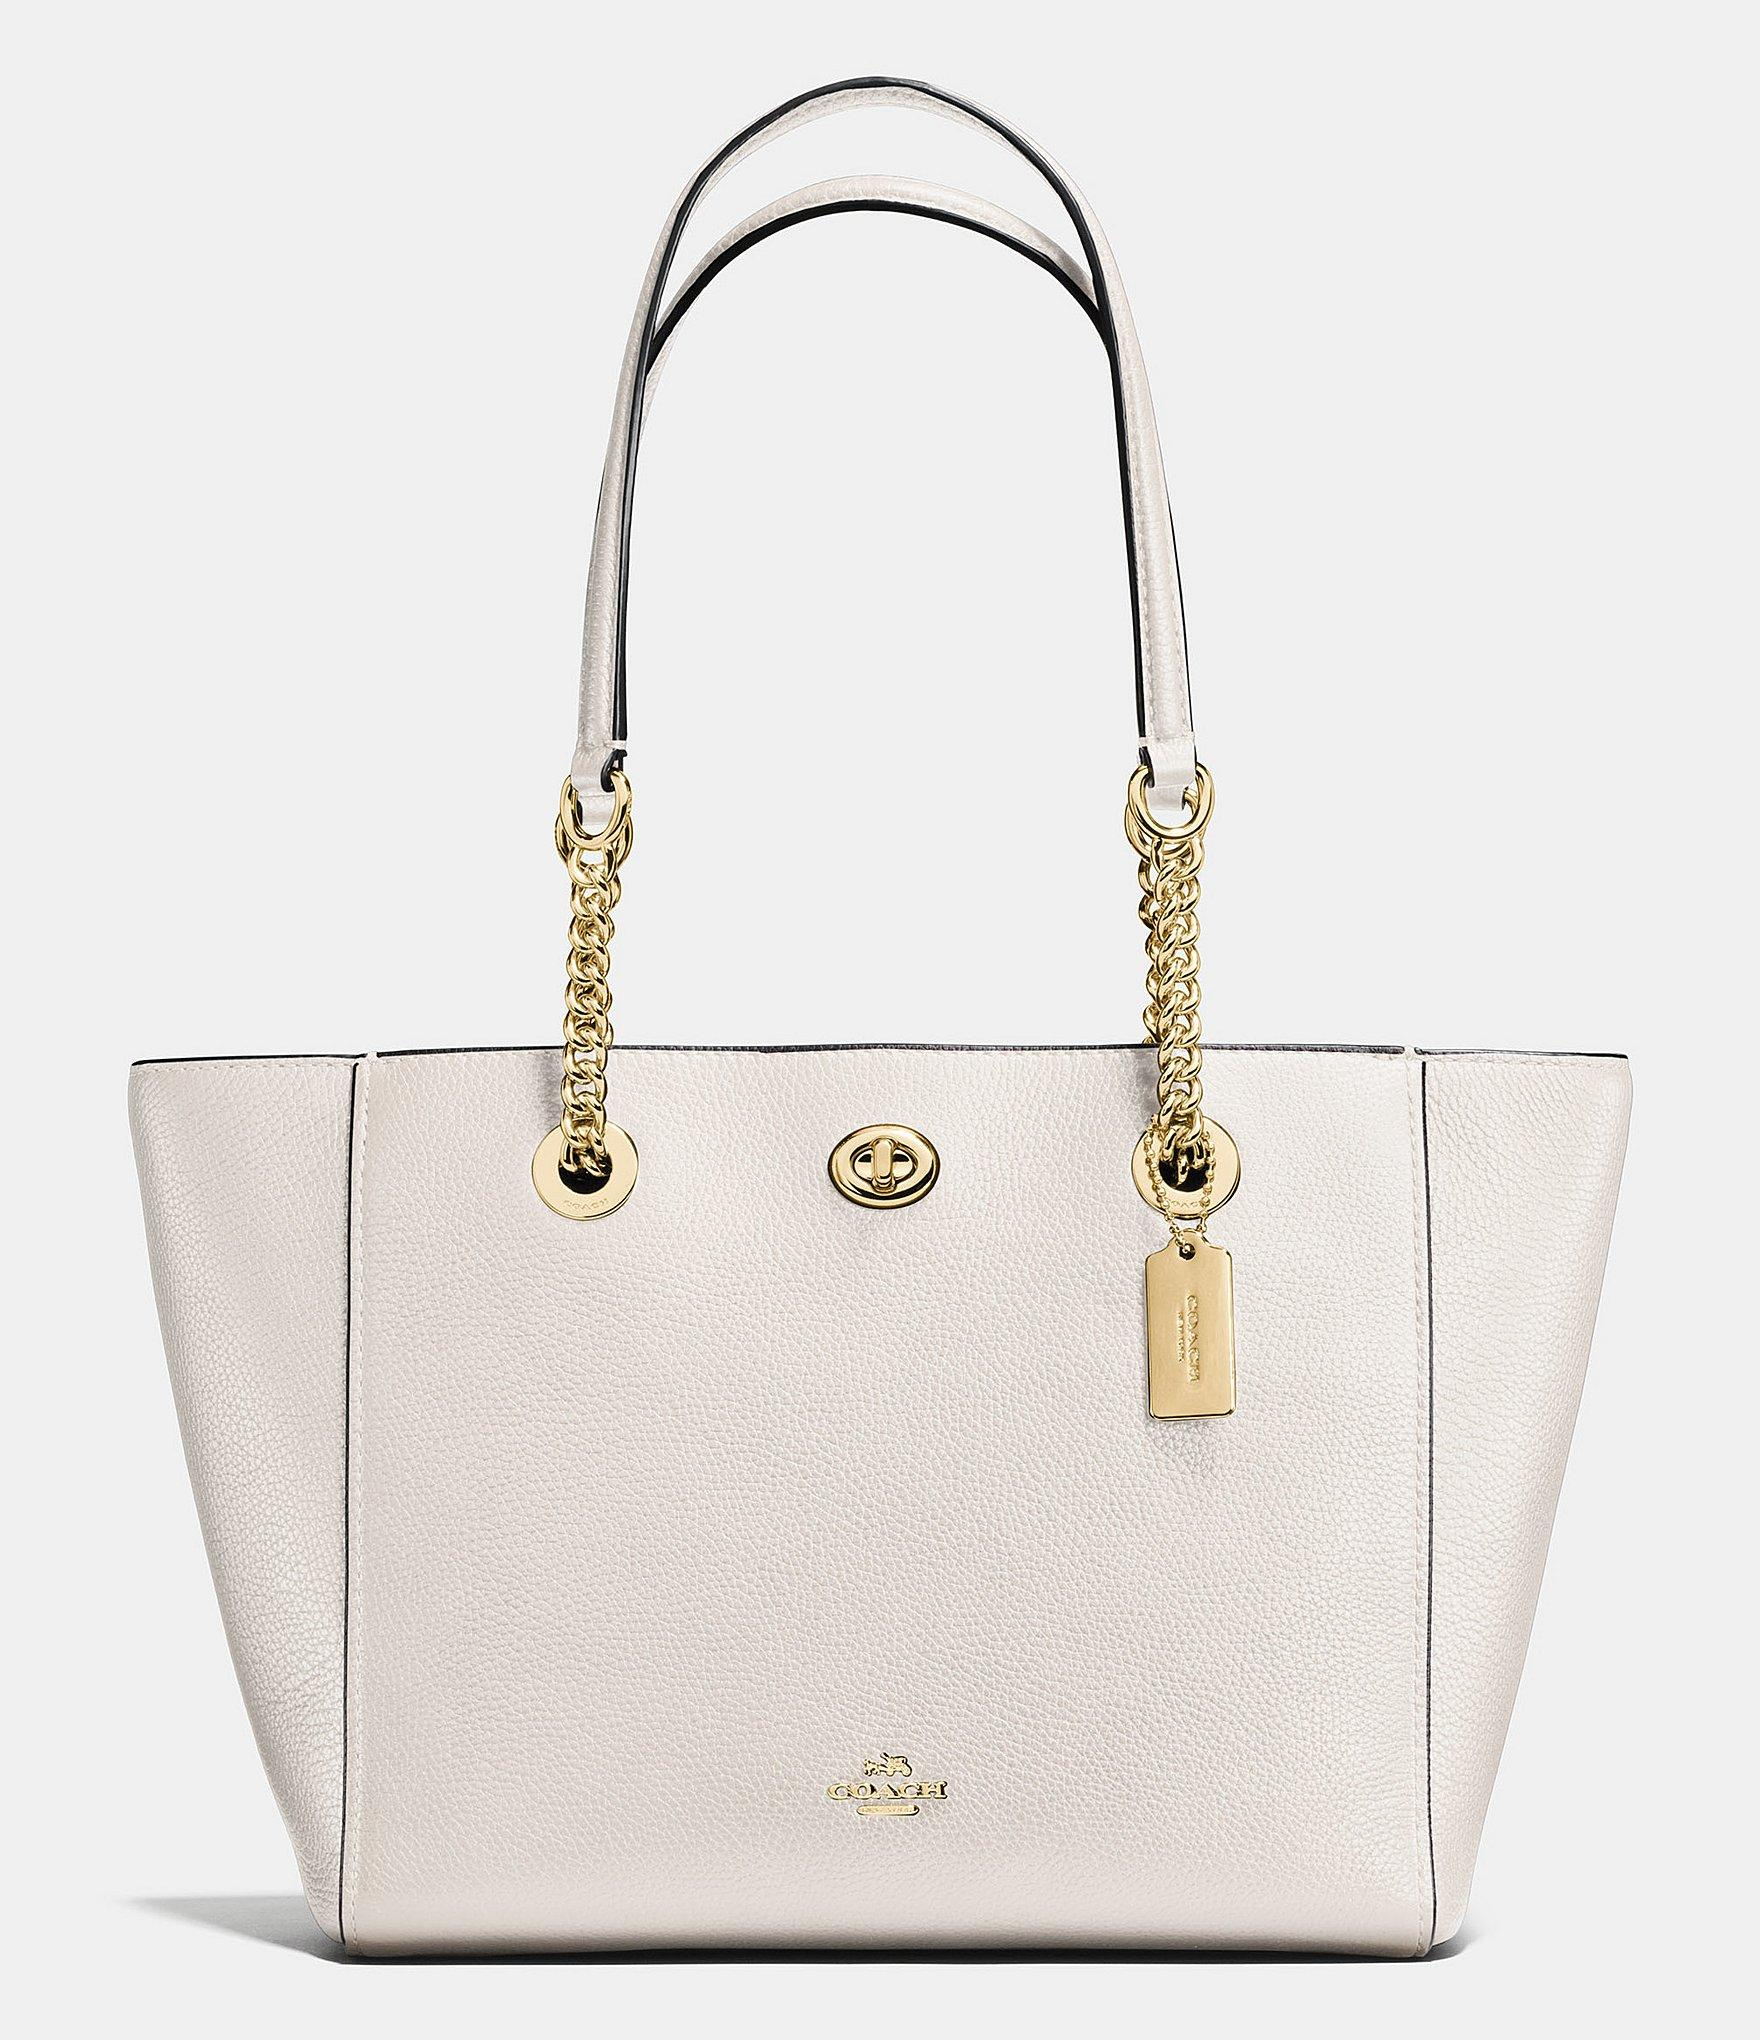 4619f3fceff8 Lyst - COACH Turnlock Chain Tote In Polished Pebble Leather in Metallic